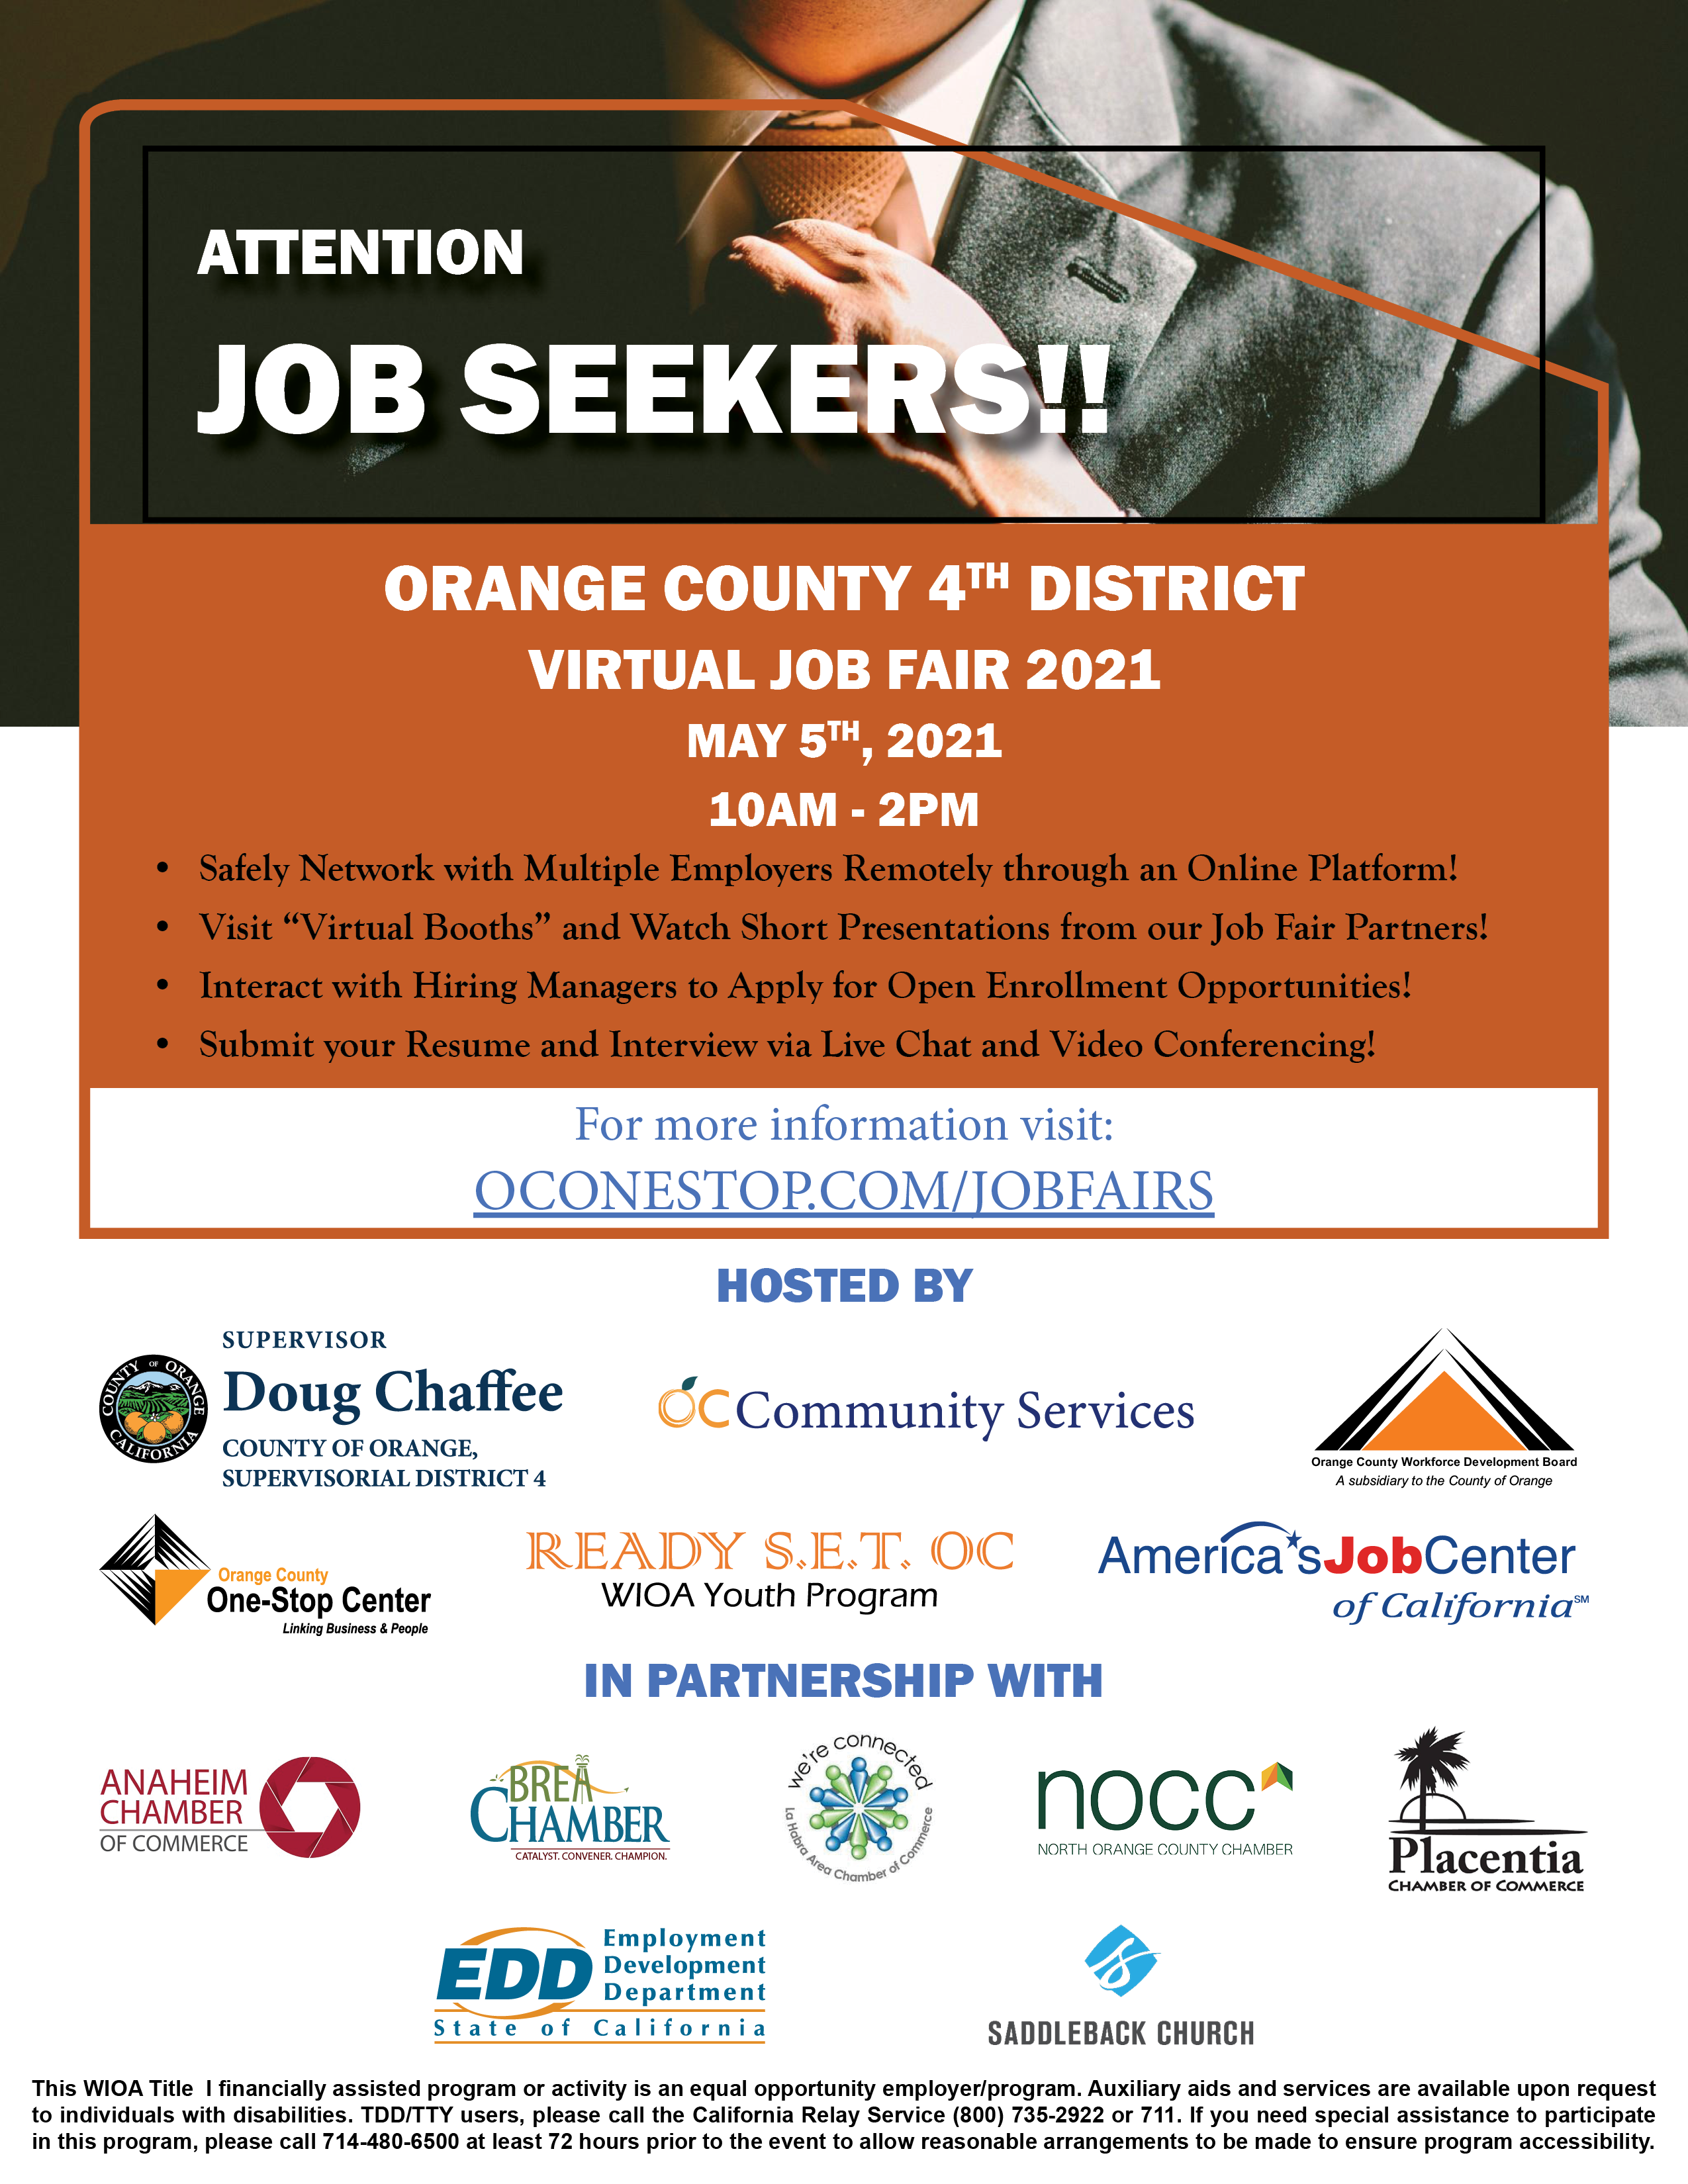 Attention Job Seekers:  Meet Employers at the Fourth District Virtual Job Fair on May 5, 2021 from 10 AM - 2 PM. Visit www.oconestop.com/jobfairs for free registration and preparation training.